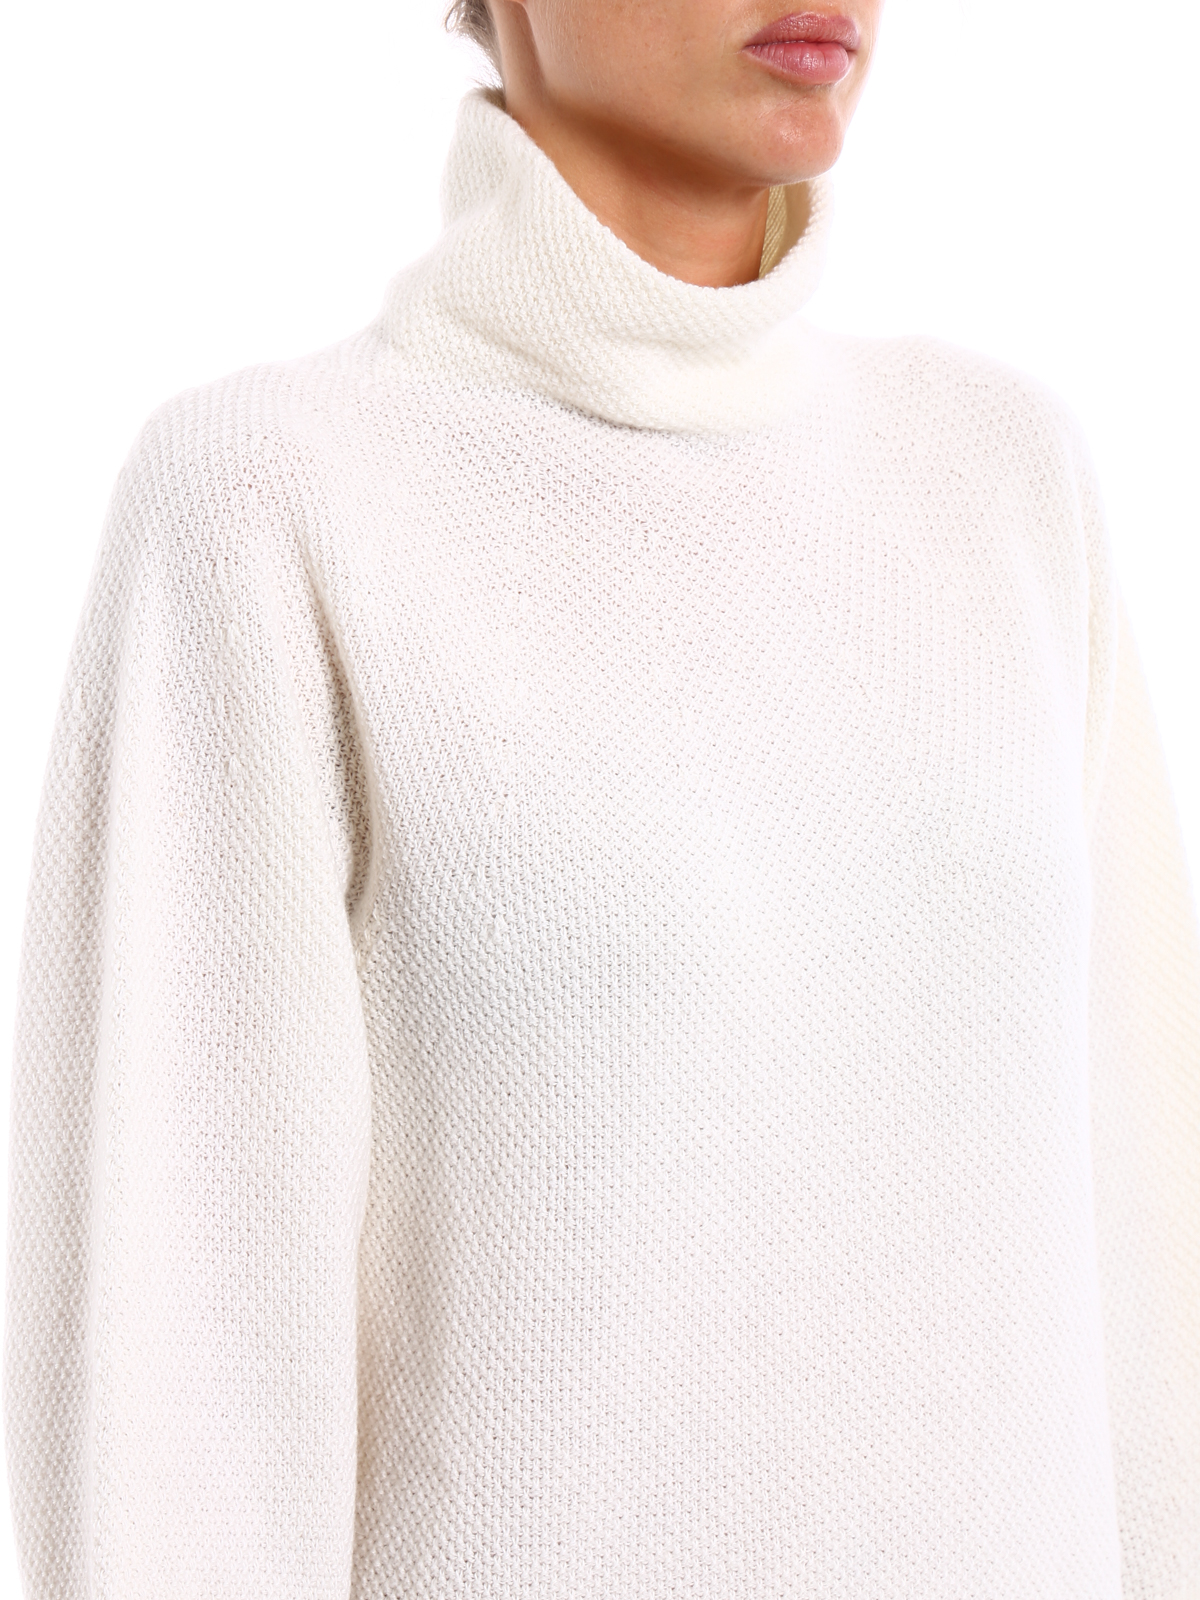 Where to buy cashmere sweaters